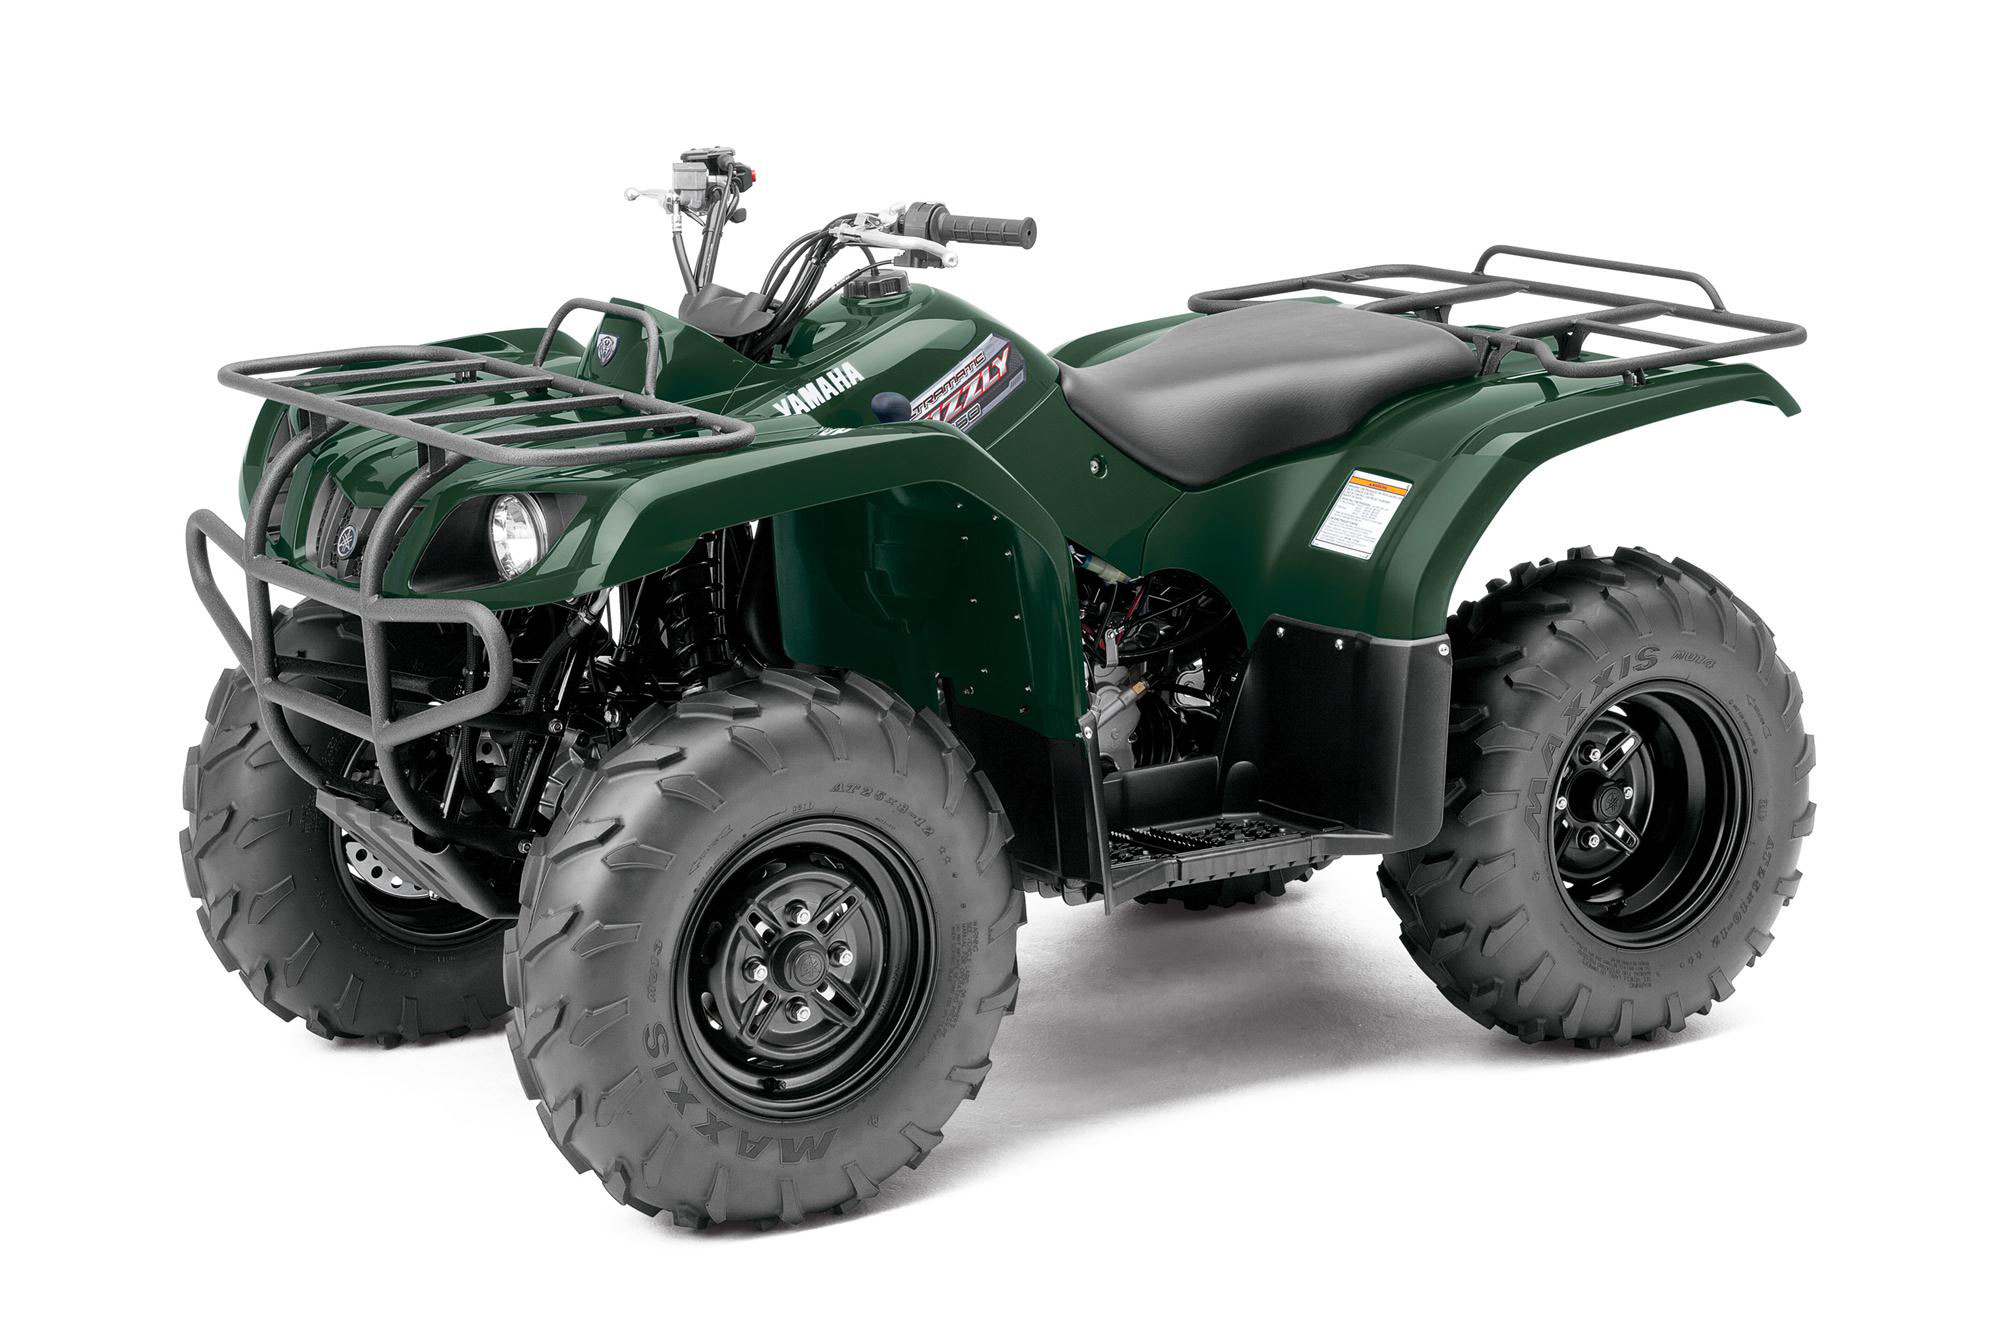 2013 Yamaha Grizzly 350 Auto 4x4 Review